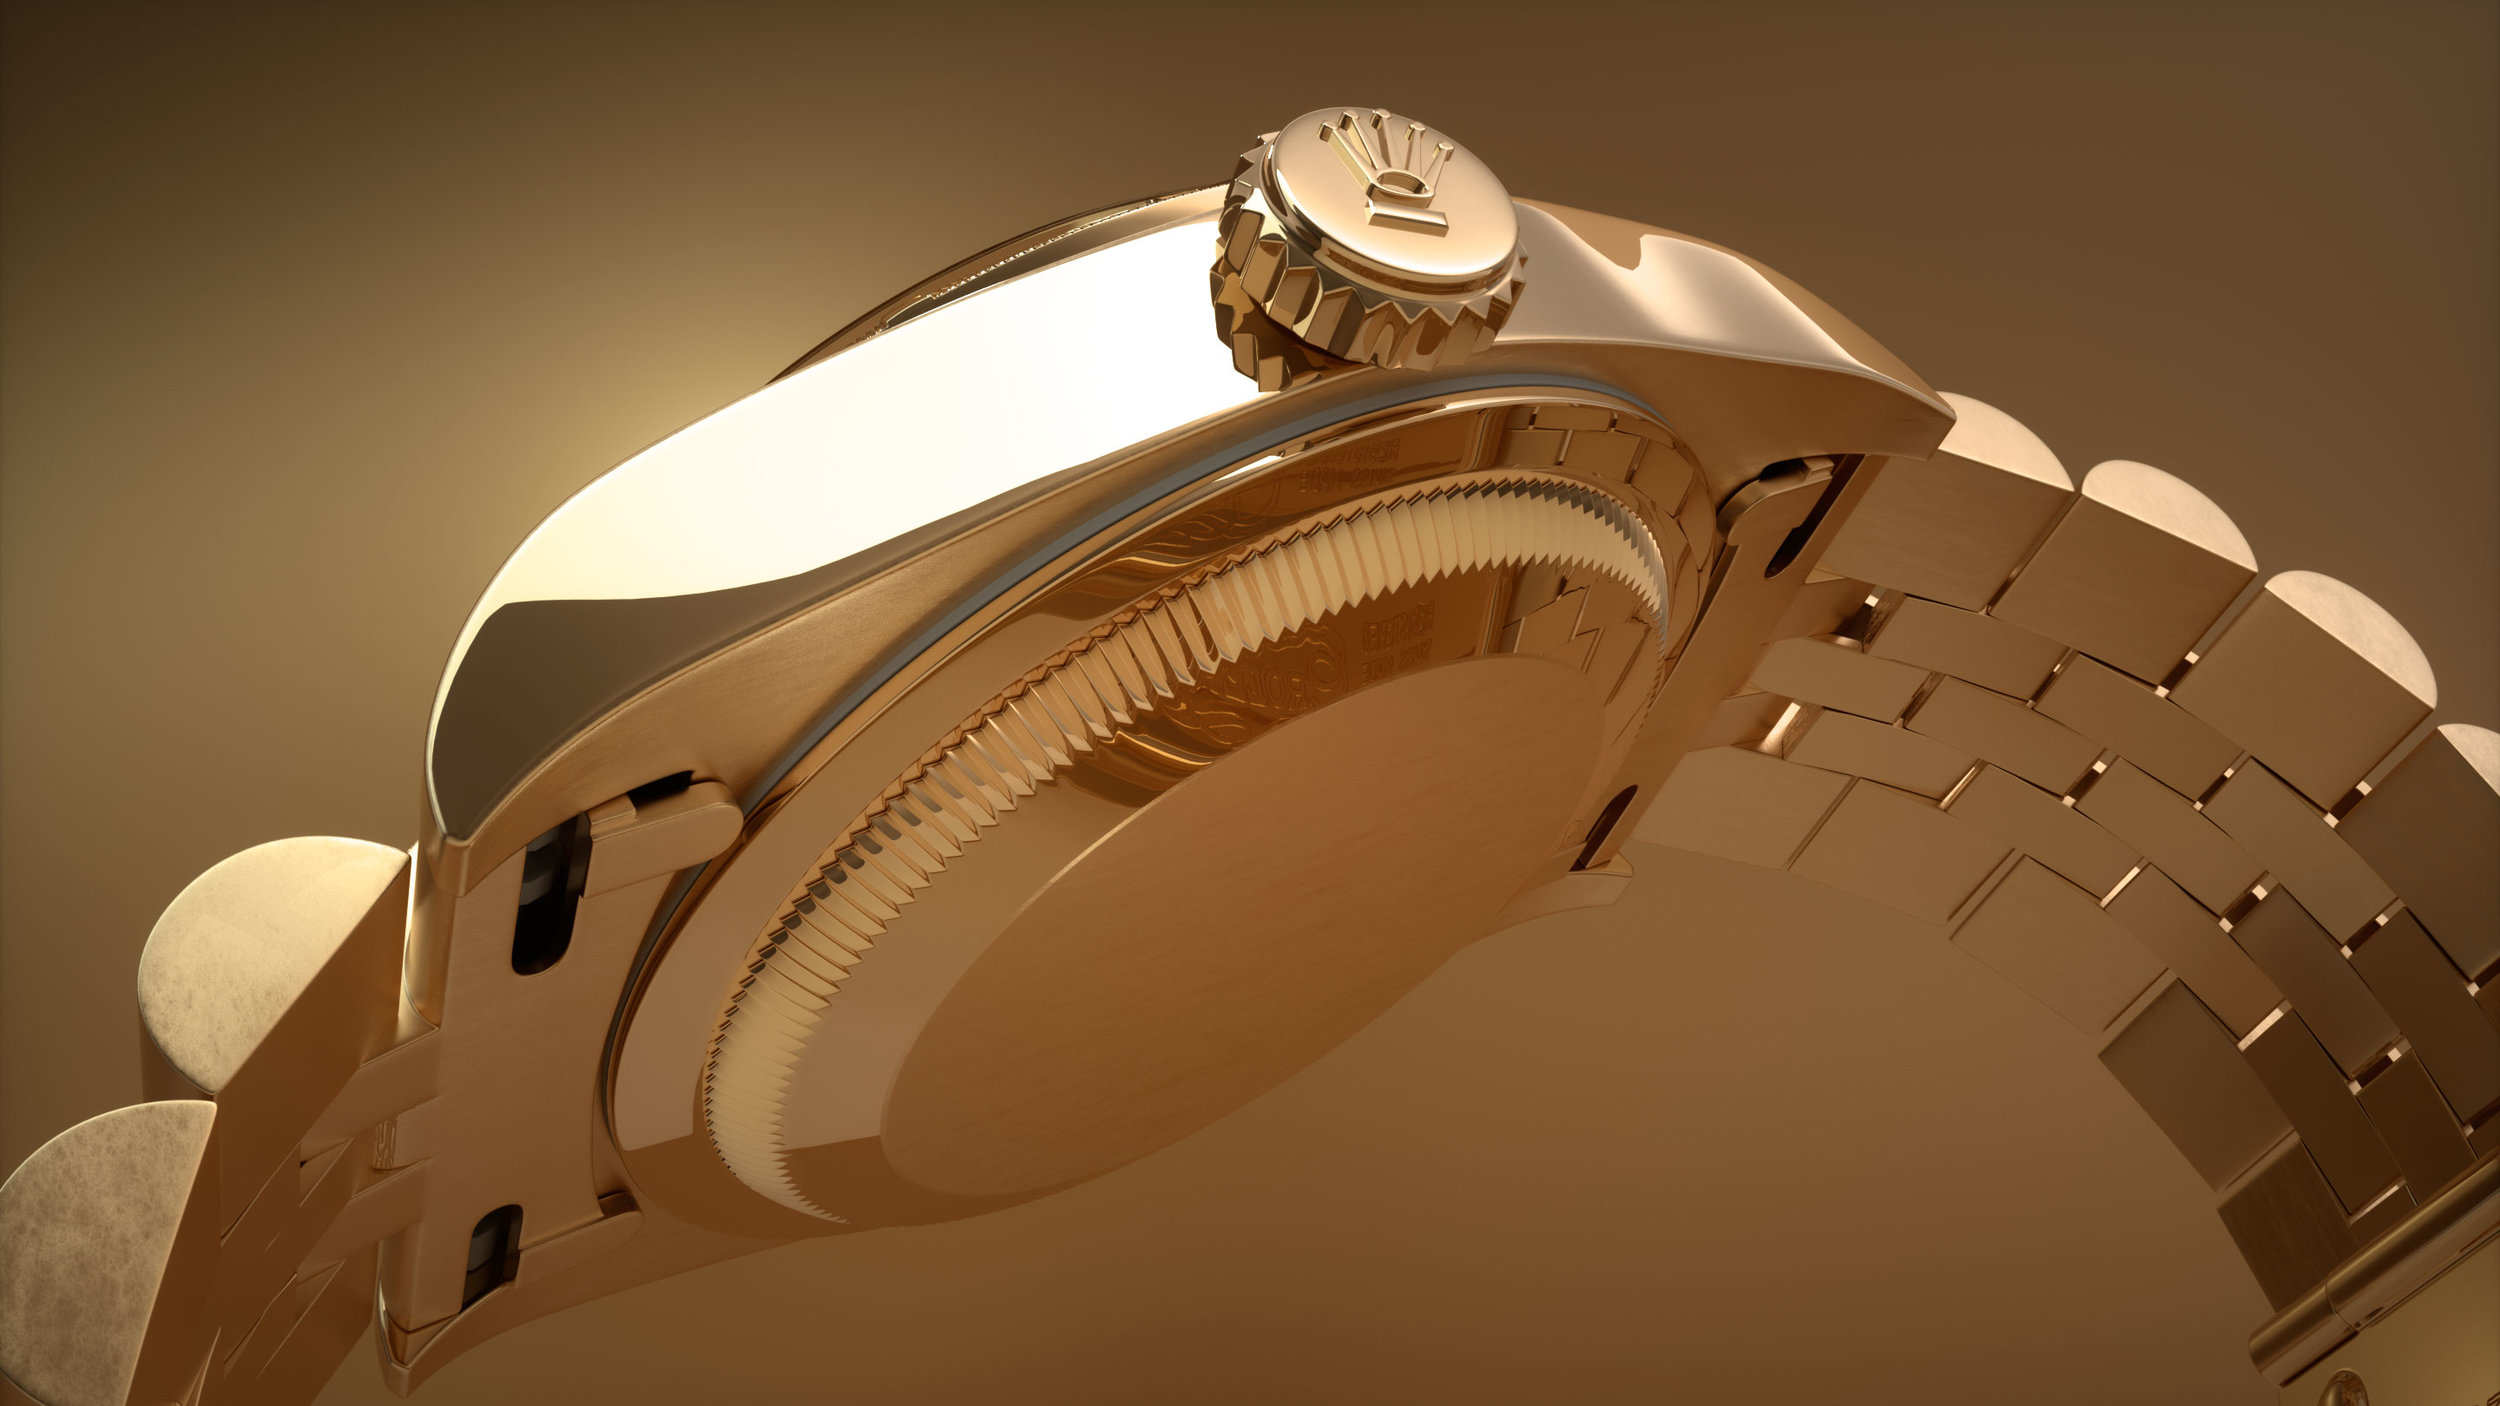 3DCW_Rolex_lowCamAngle_goldBackground_wip001.jpg